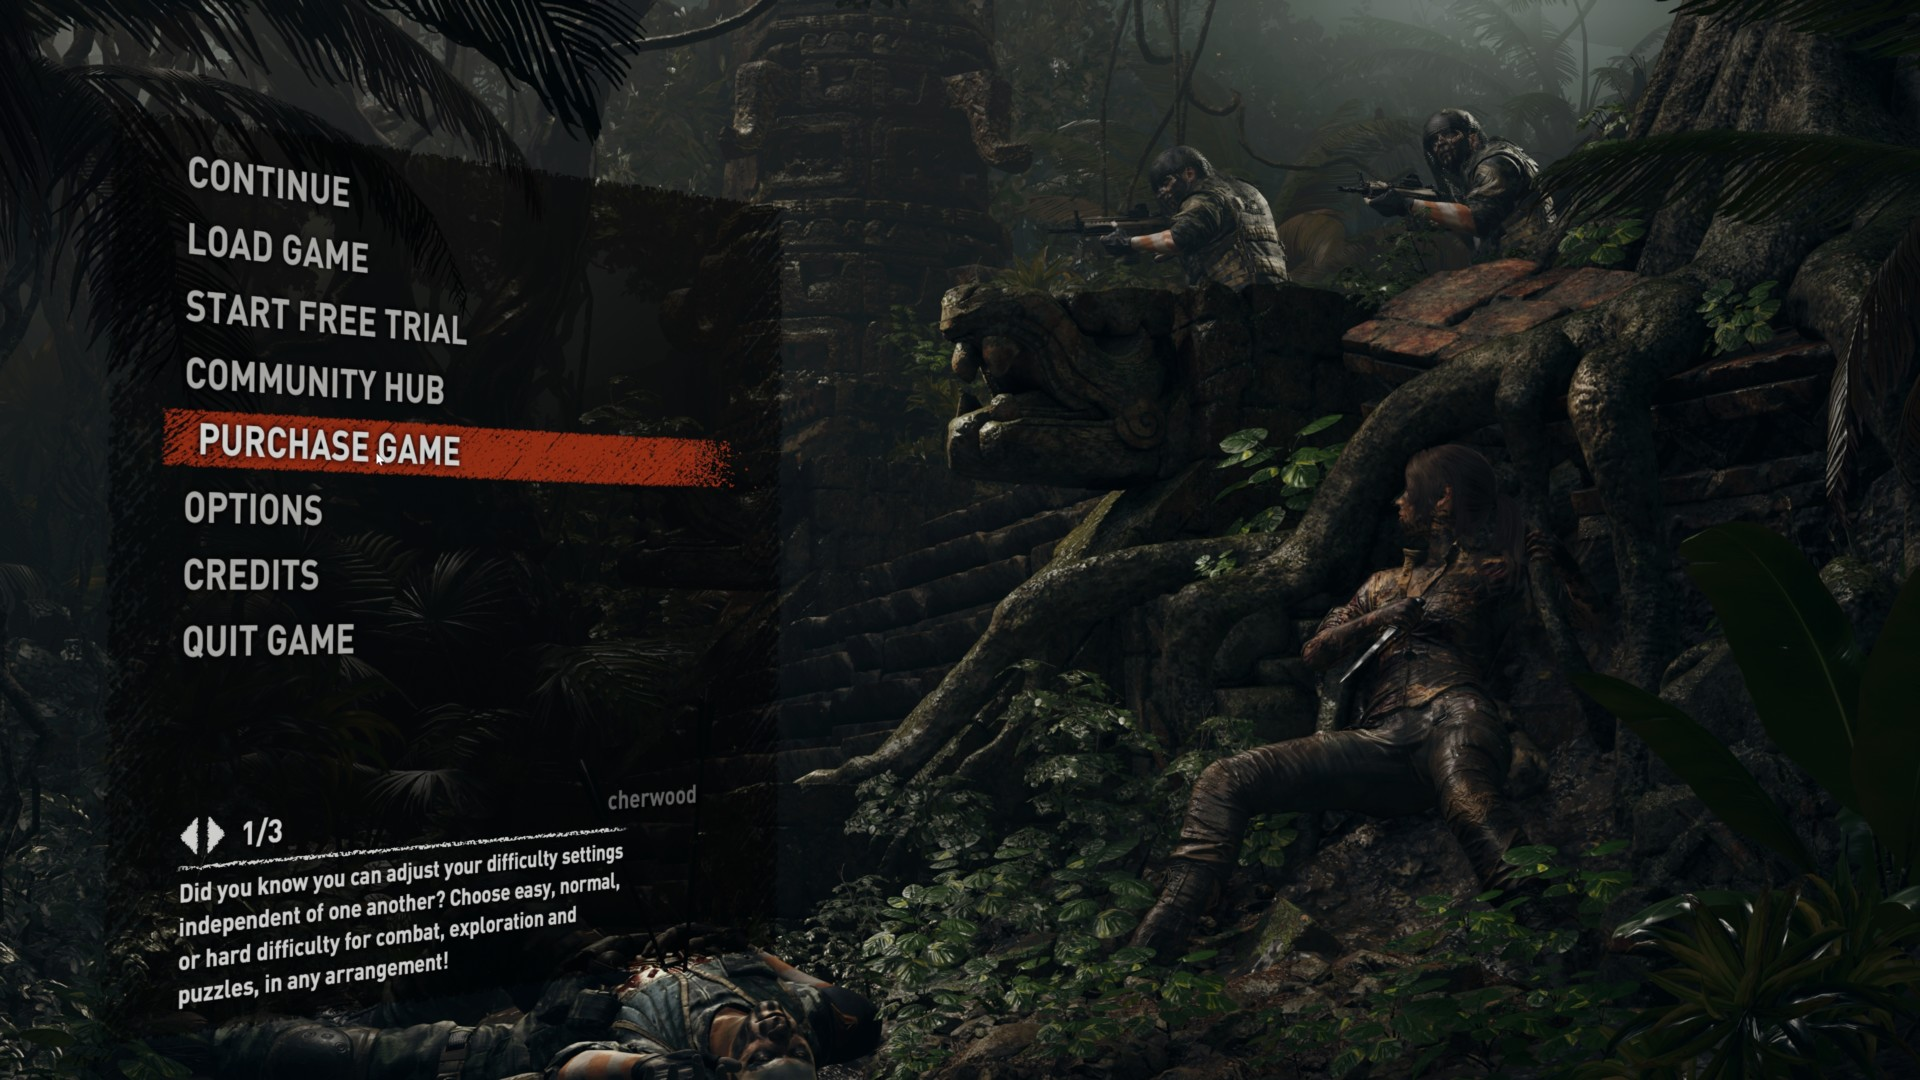 shadow-of-the-tomb-raider-main-menu